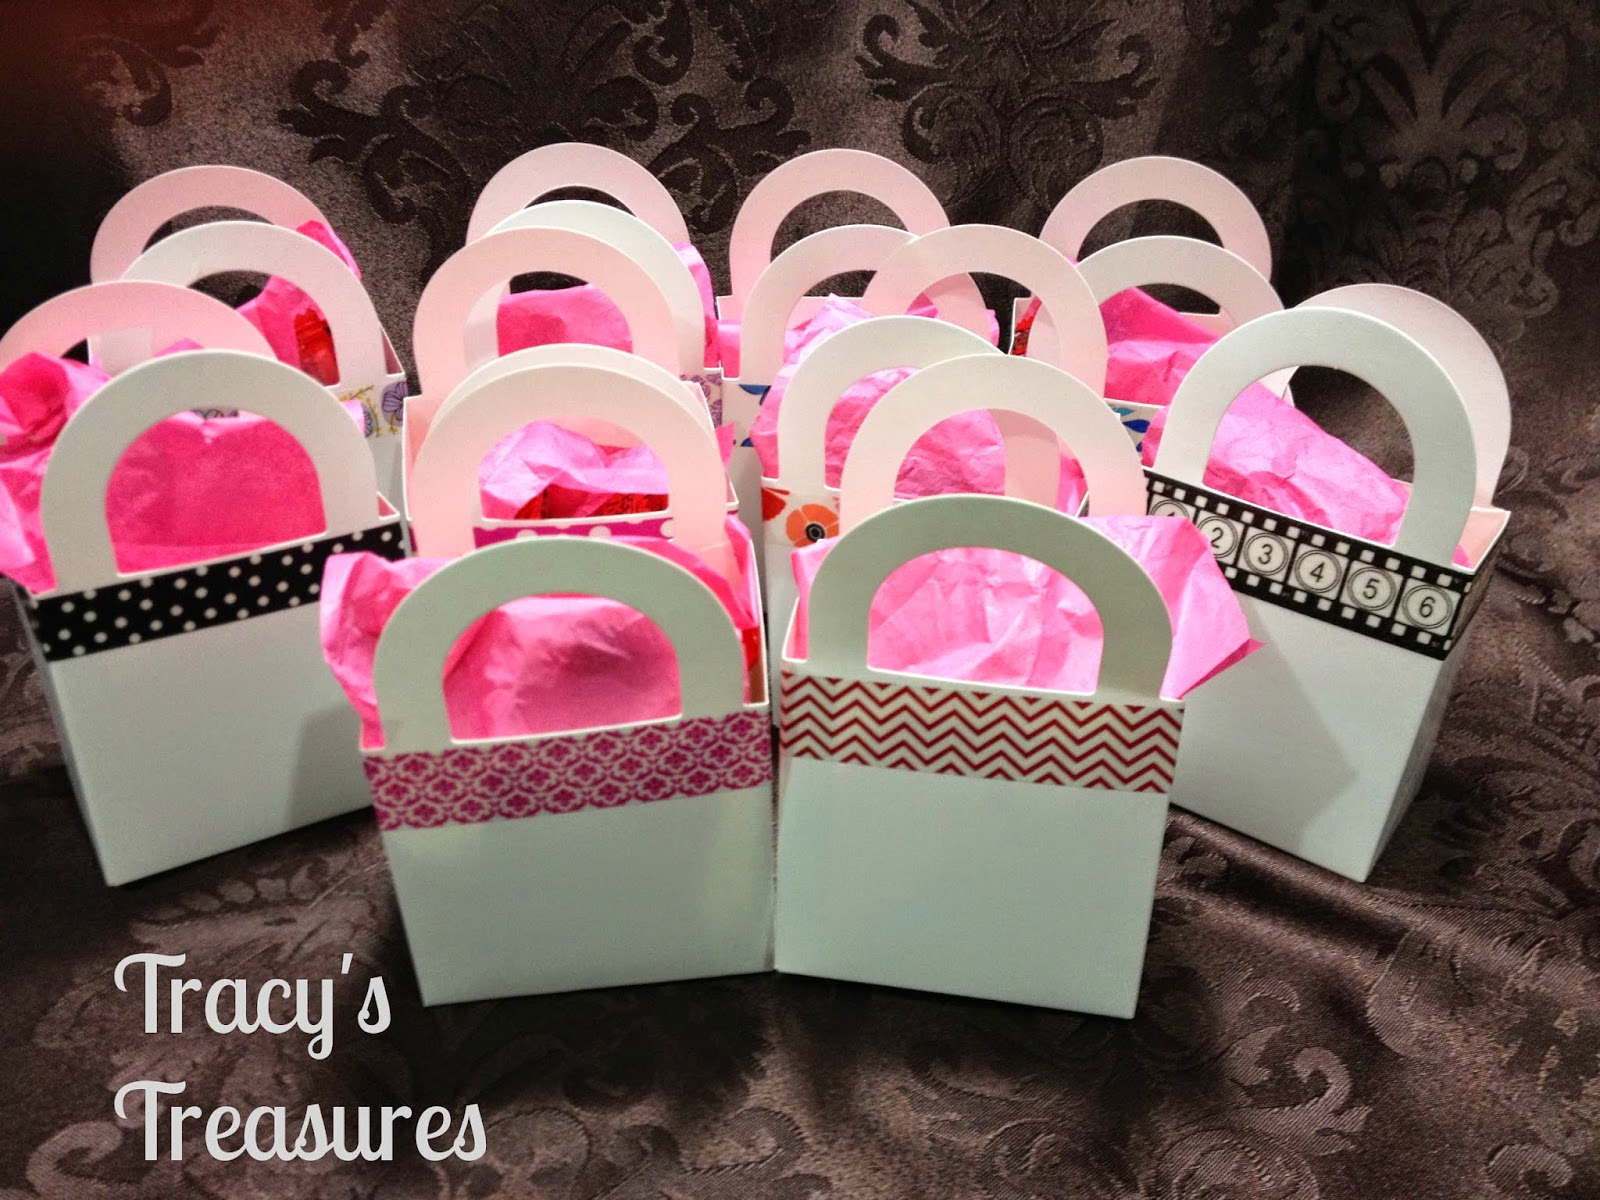 Tracys Treasures: Quick Gift Bags for my Crop & Create Friends